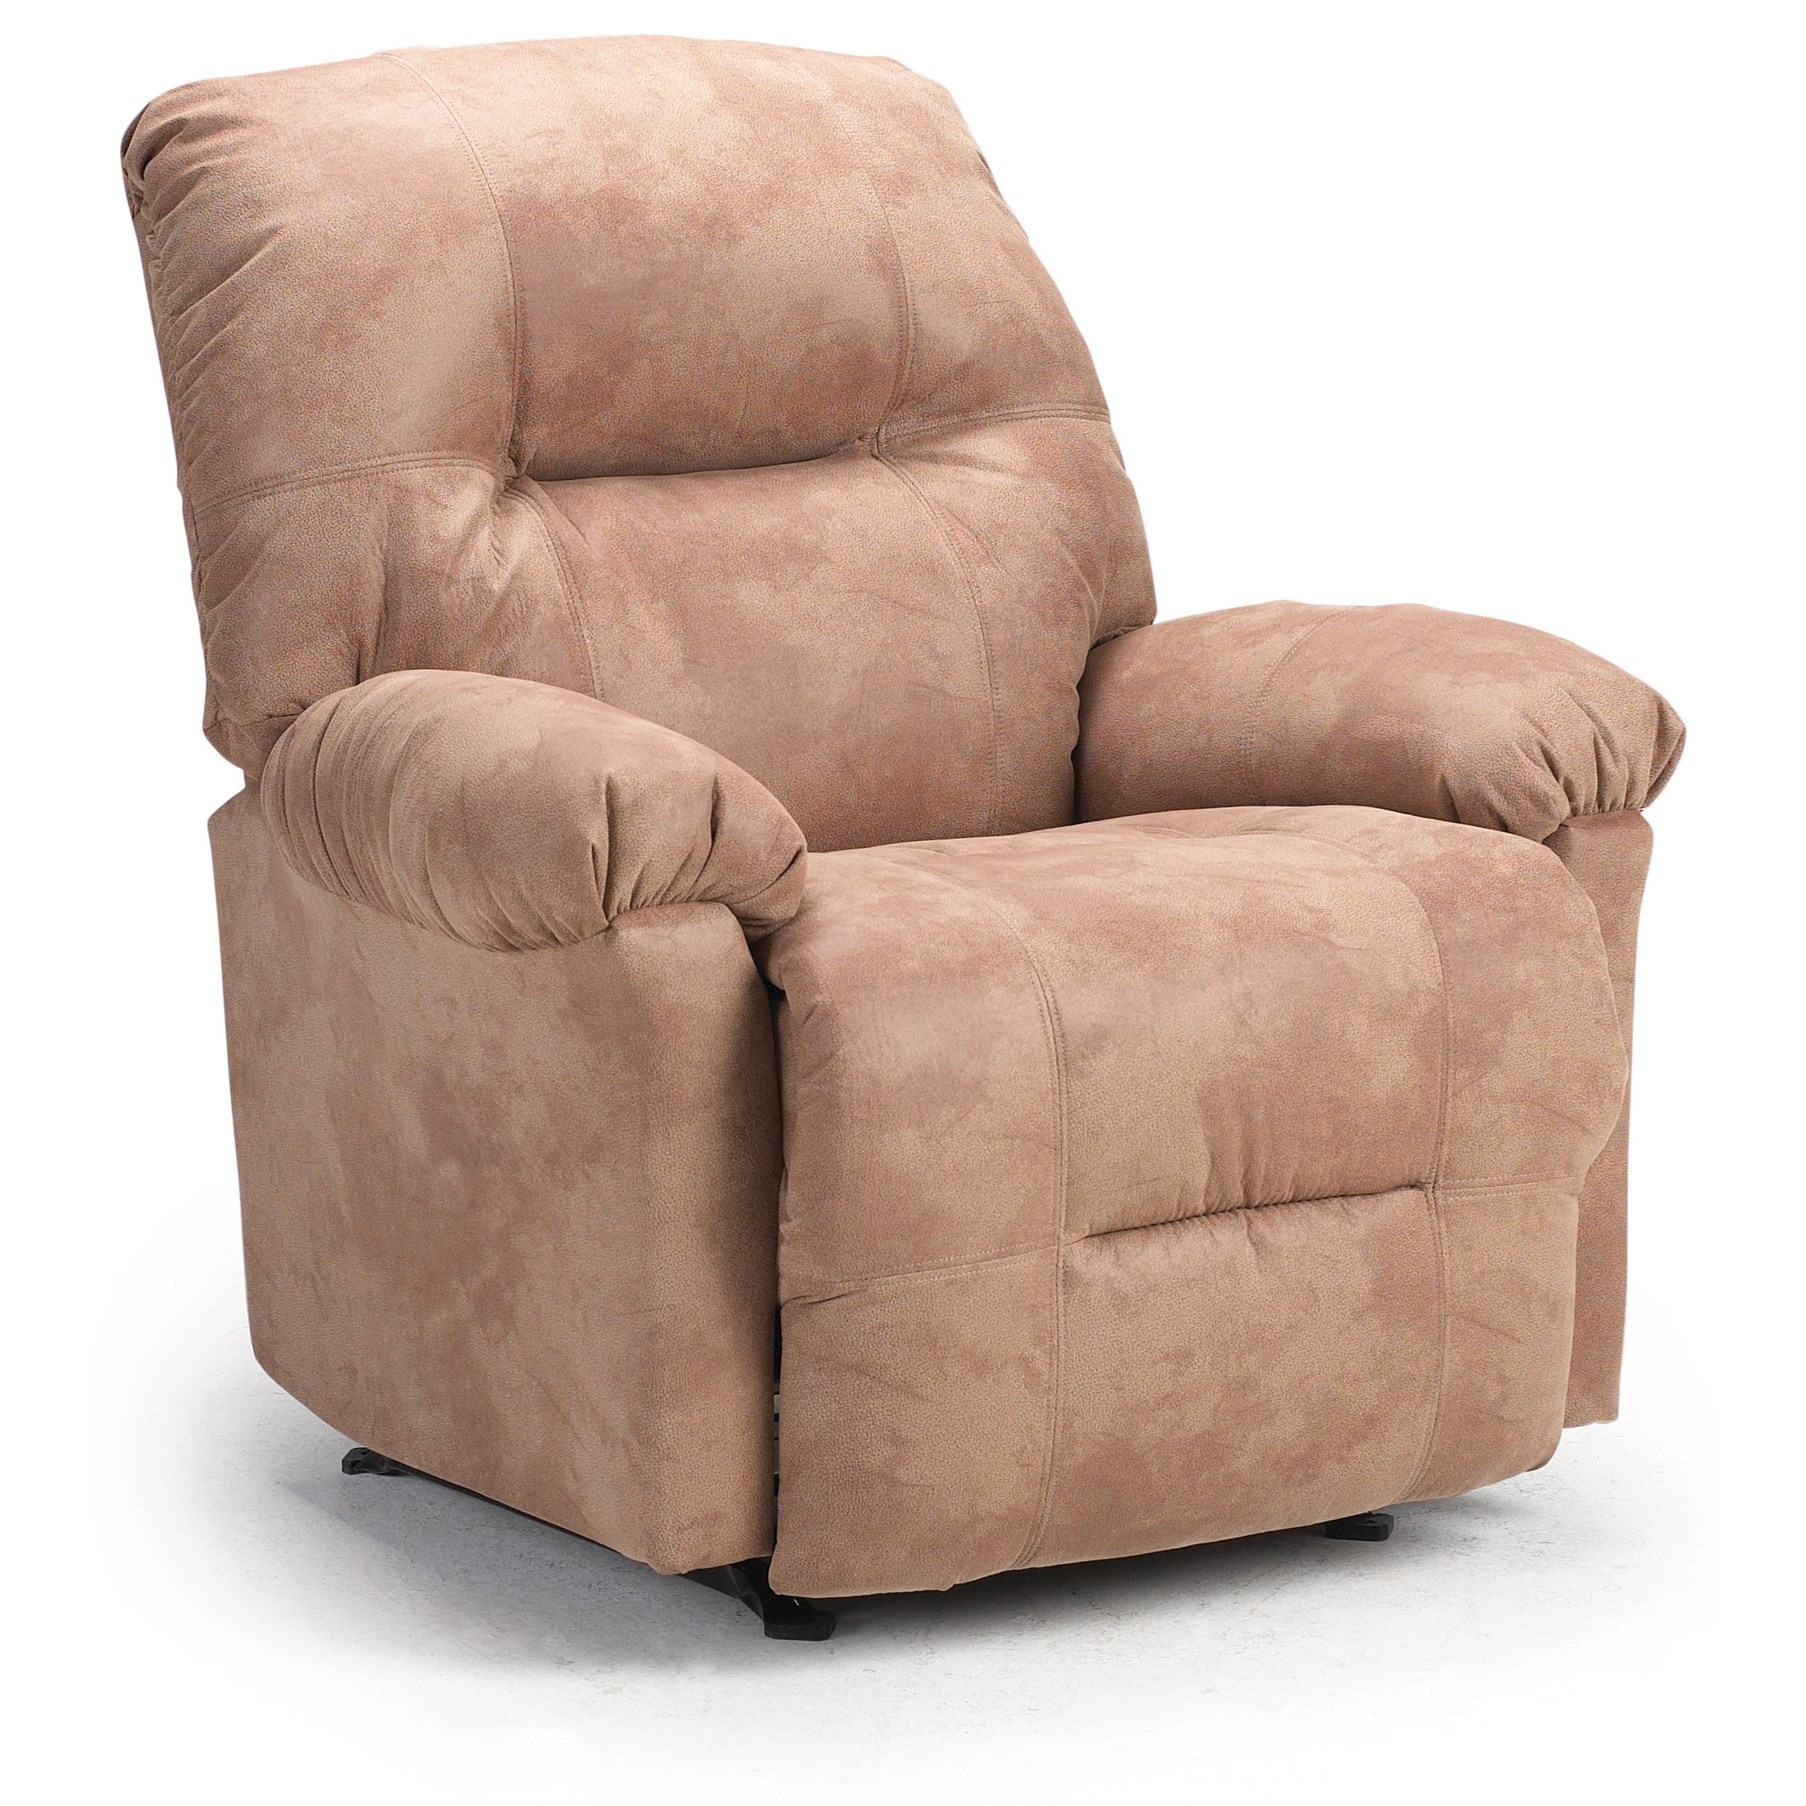 Petite Recliners Wynette Swivel Glider Recliner by Best Home Furnishings at Baer's Furniture